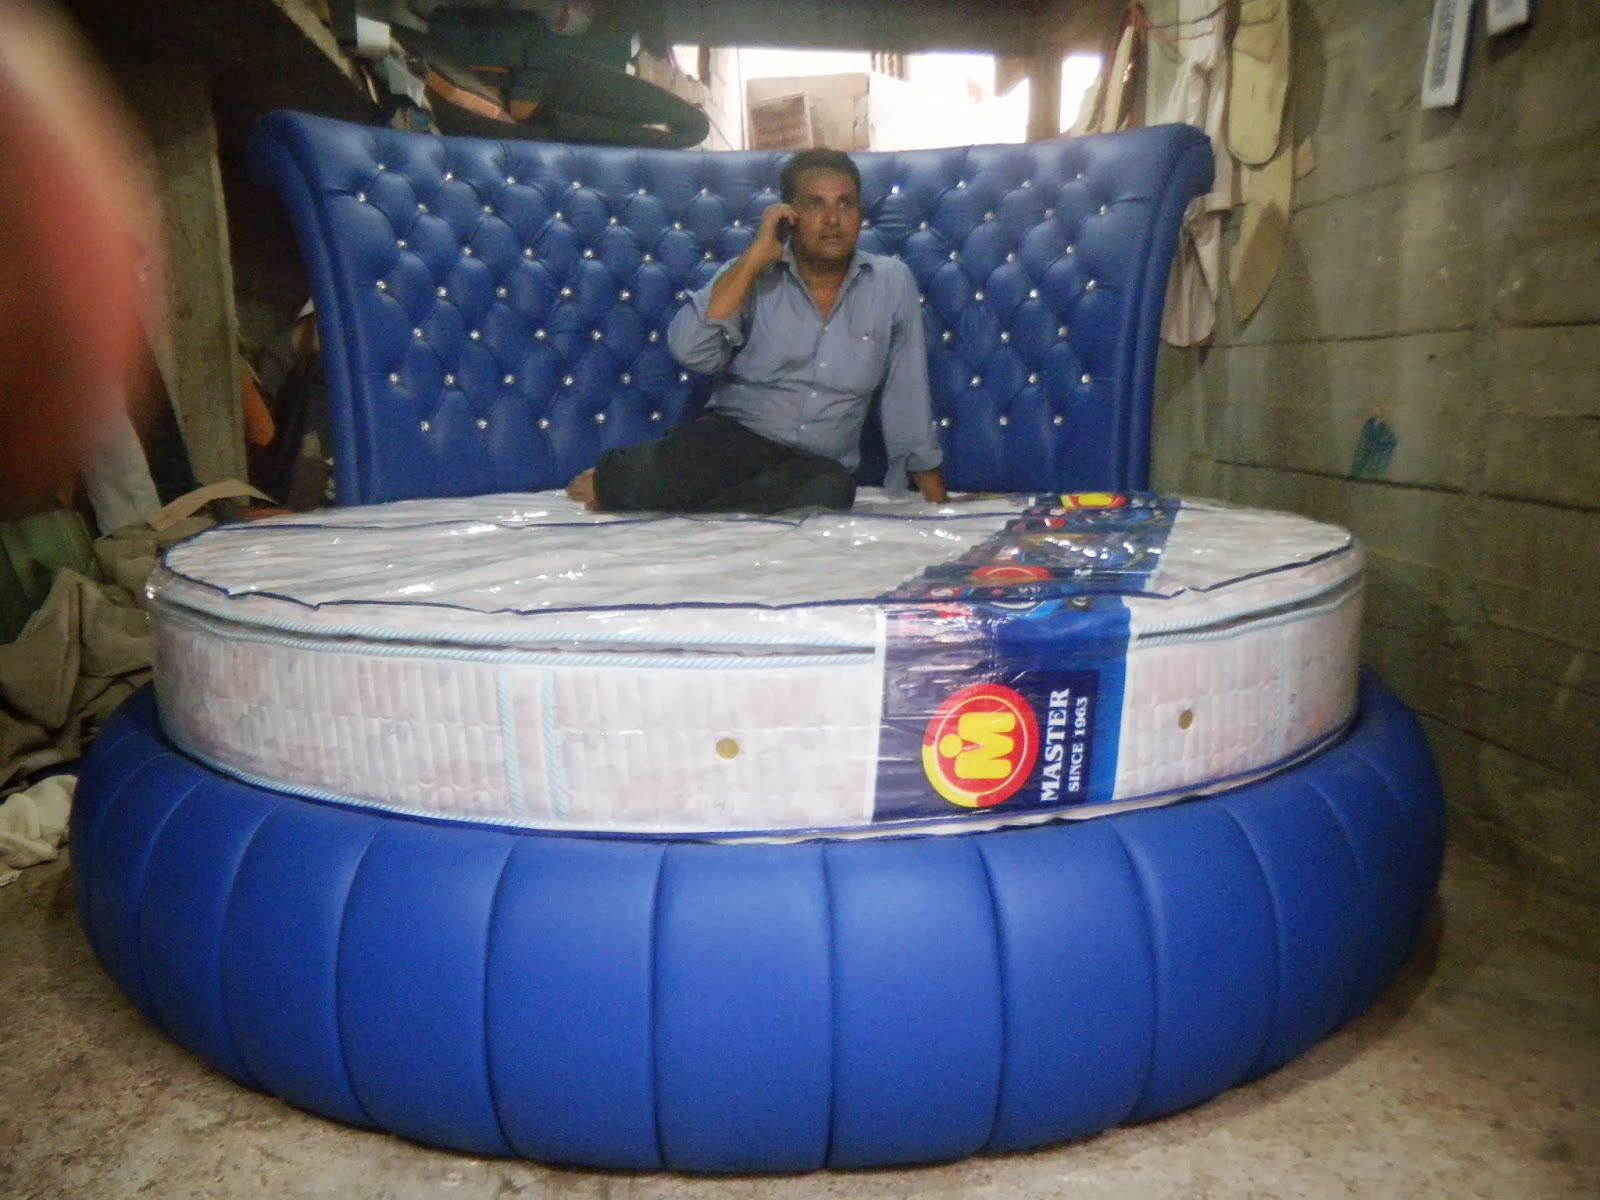 Pakistan S Leading Grand Wood Furniture Manufacturer And Exporter Offers  Round Bed For Your Prestigious HomeRound Beds   clubdeases com. Pakistan Bedroom Furniture Manufacturers. Home Design Ideas